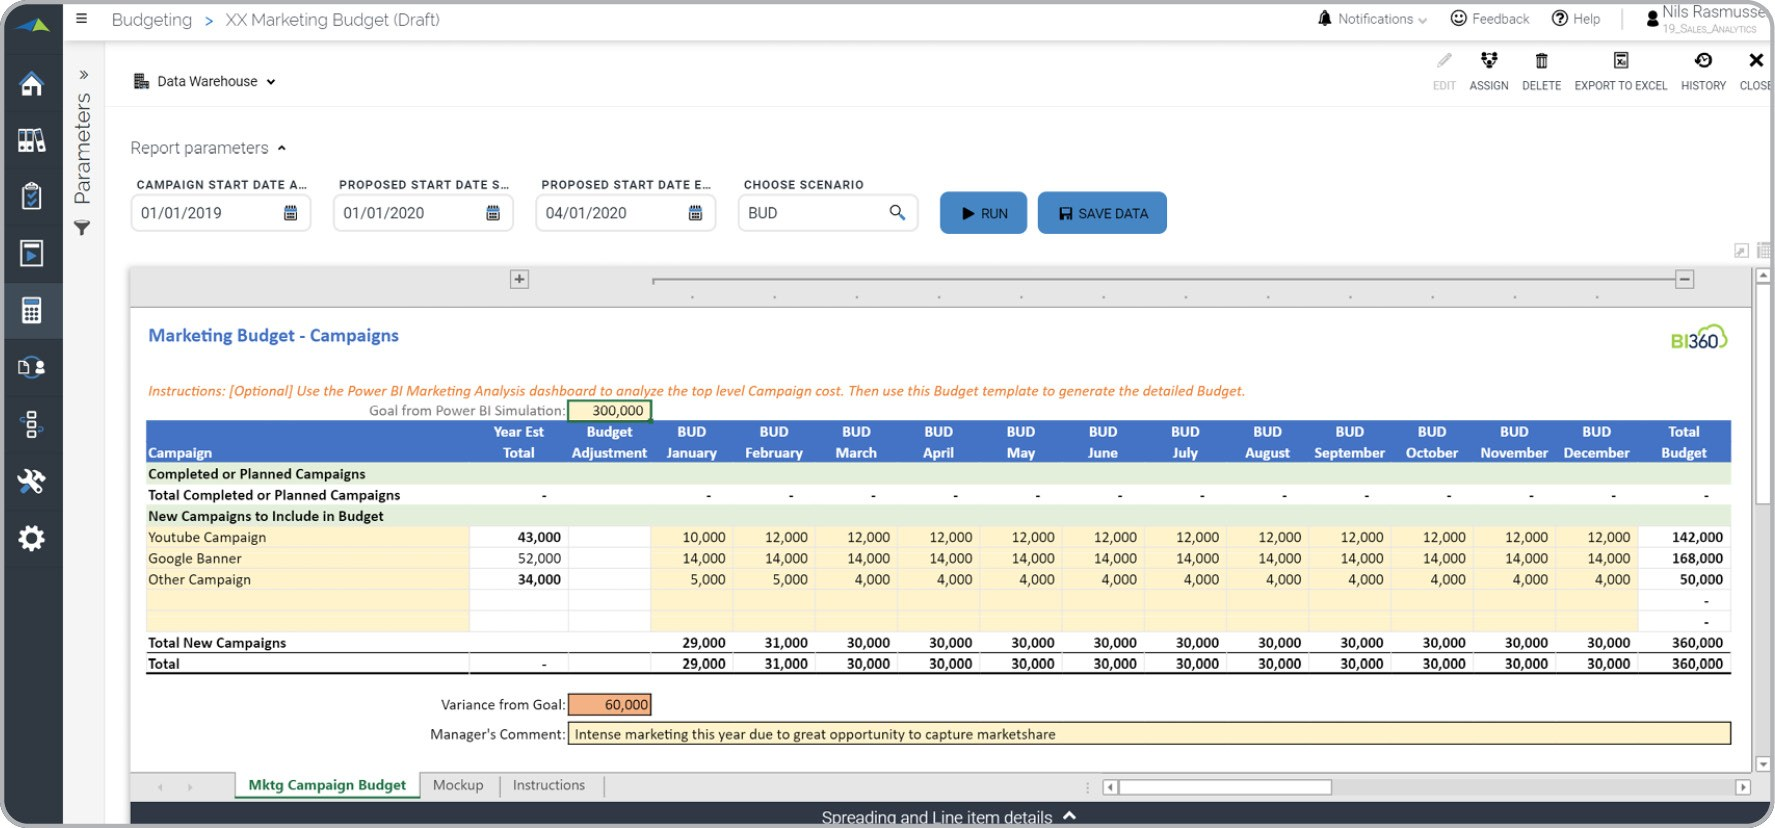 Marketing Plan Budget Template from www.solverglobal.com